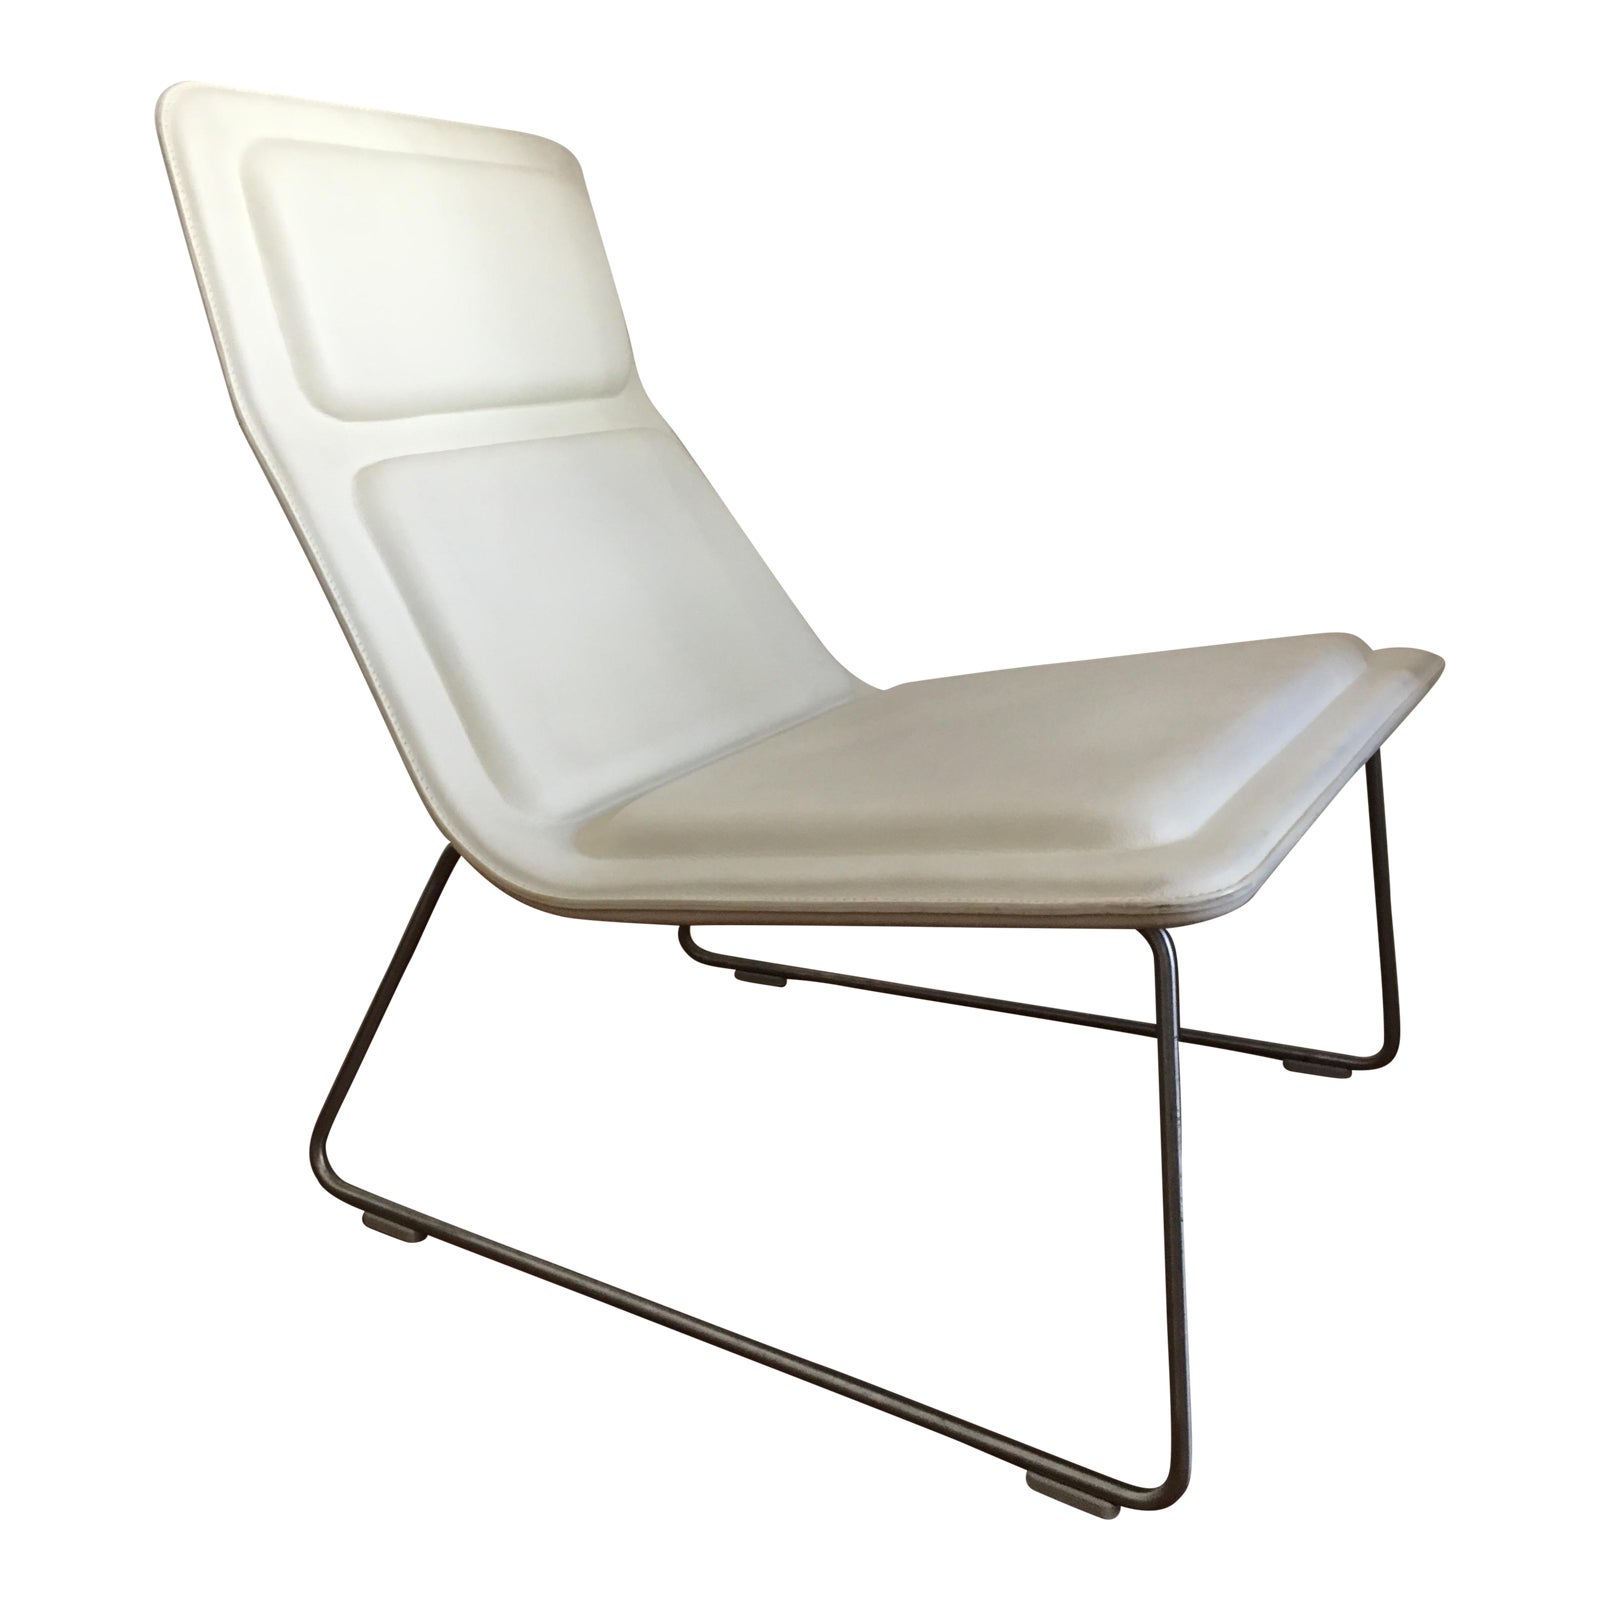 Jasper Morrison Cappellini Low Pad Lounge Chair Tom Dixon